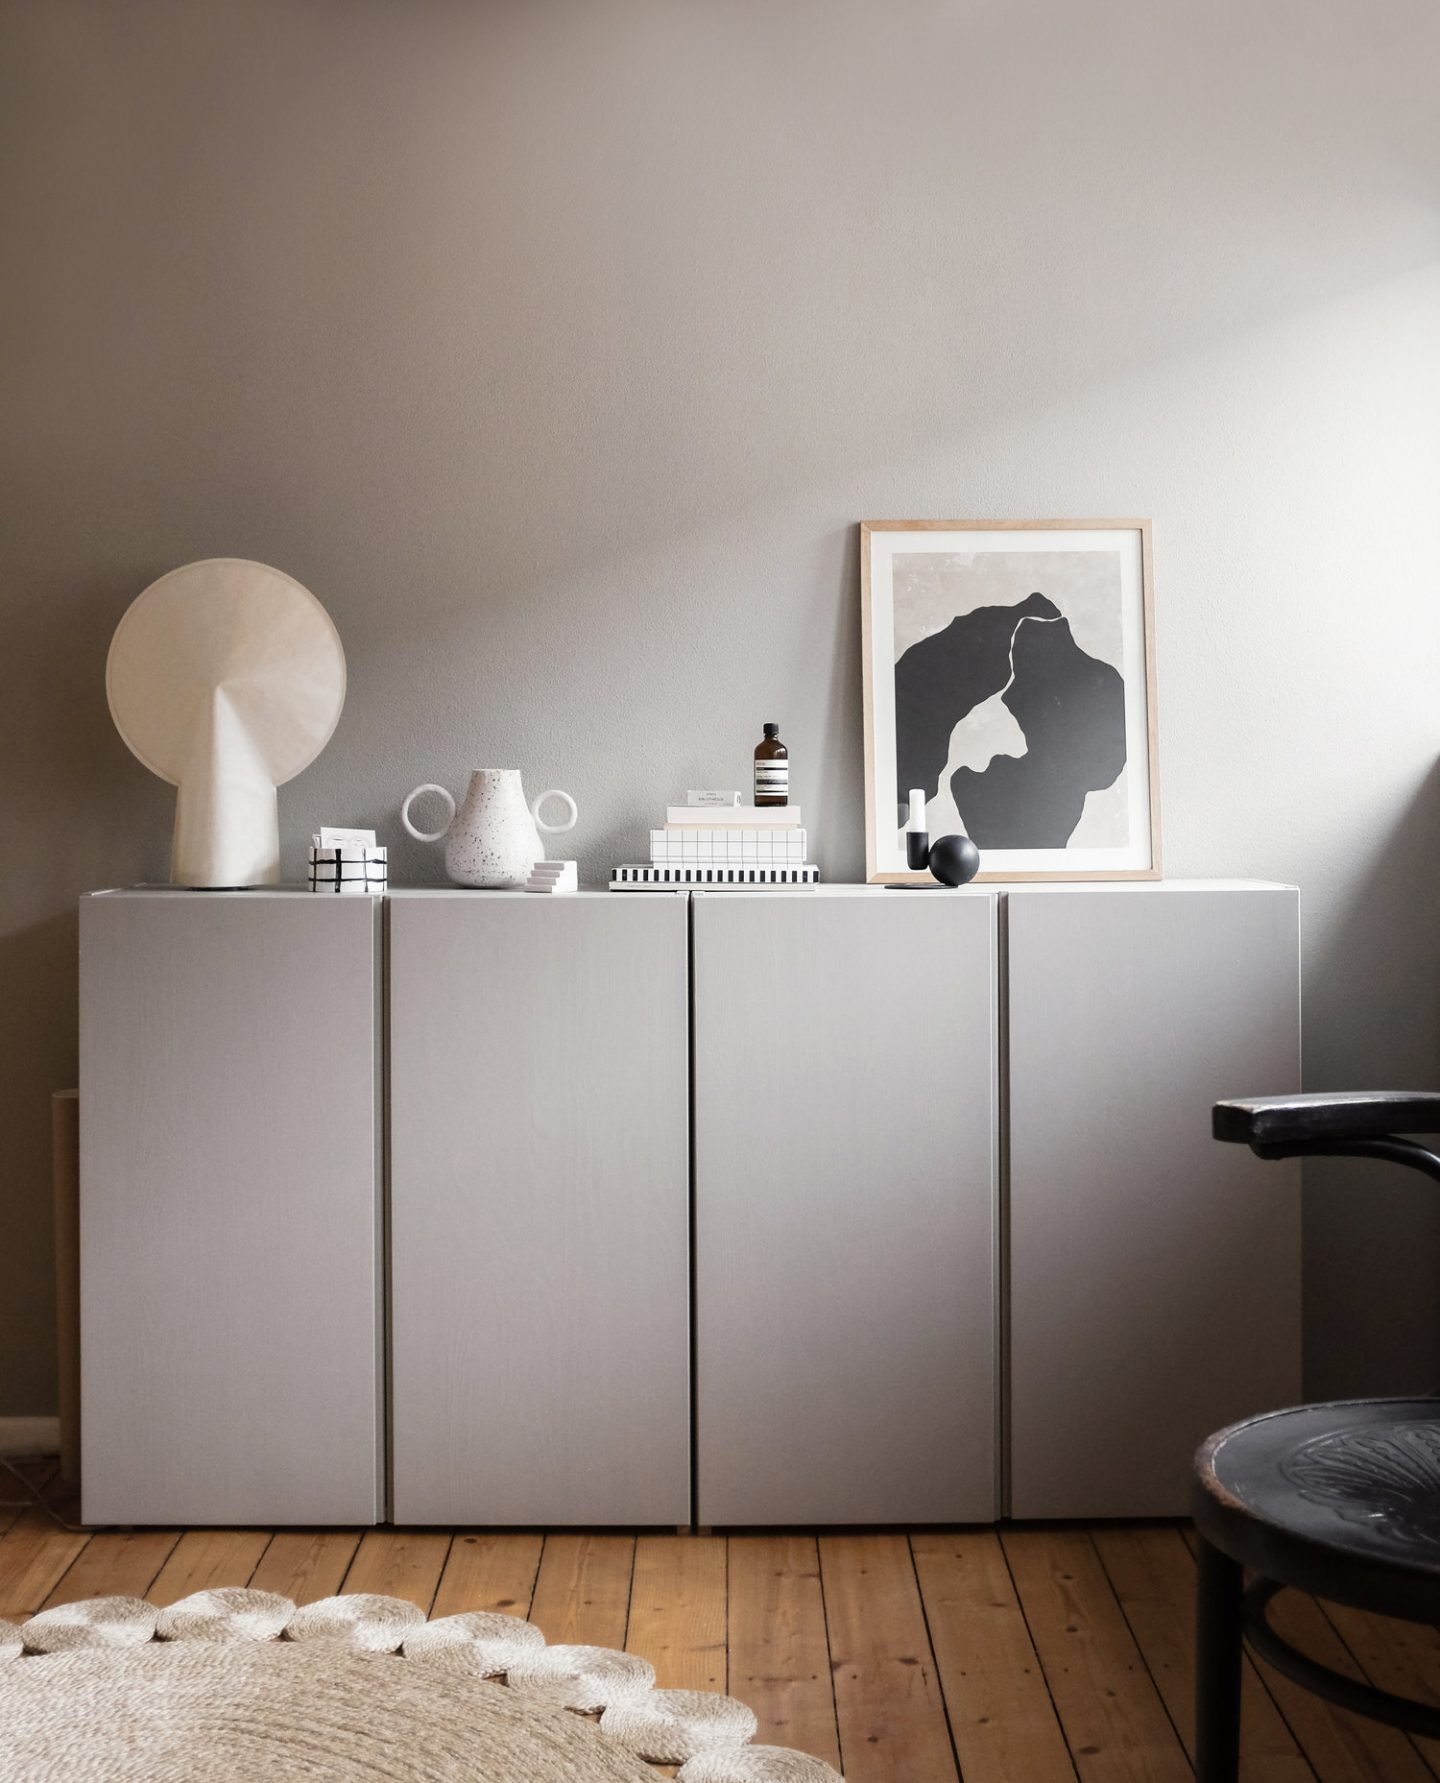 Three Storage Solutions From Ikea That Will Make Your Home Instantly More Stylish